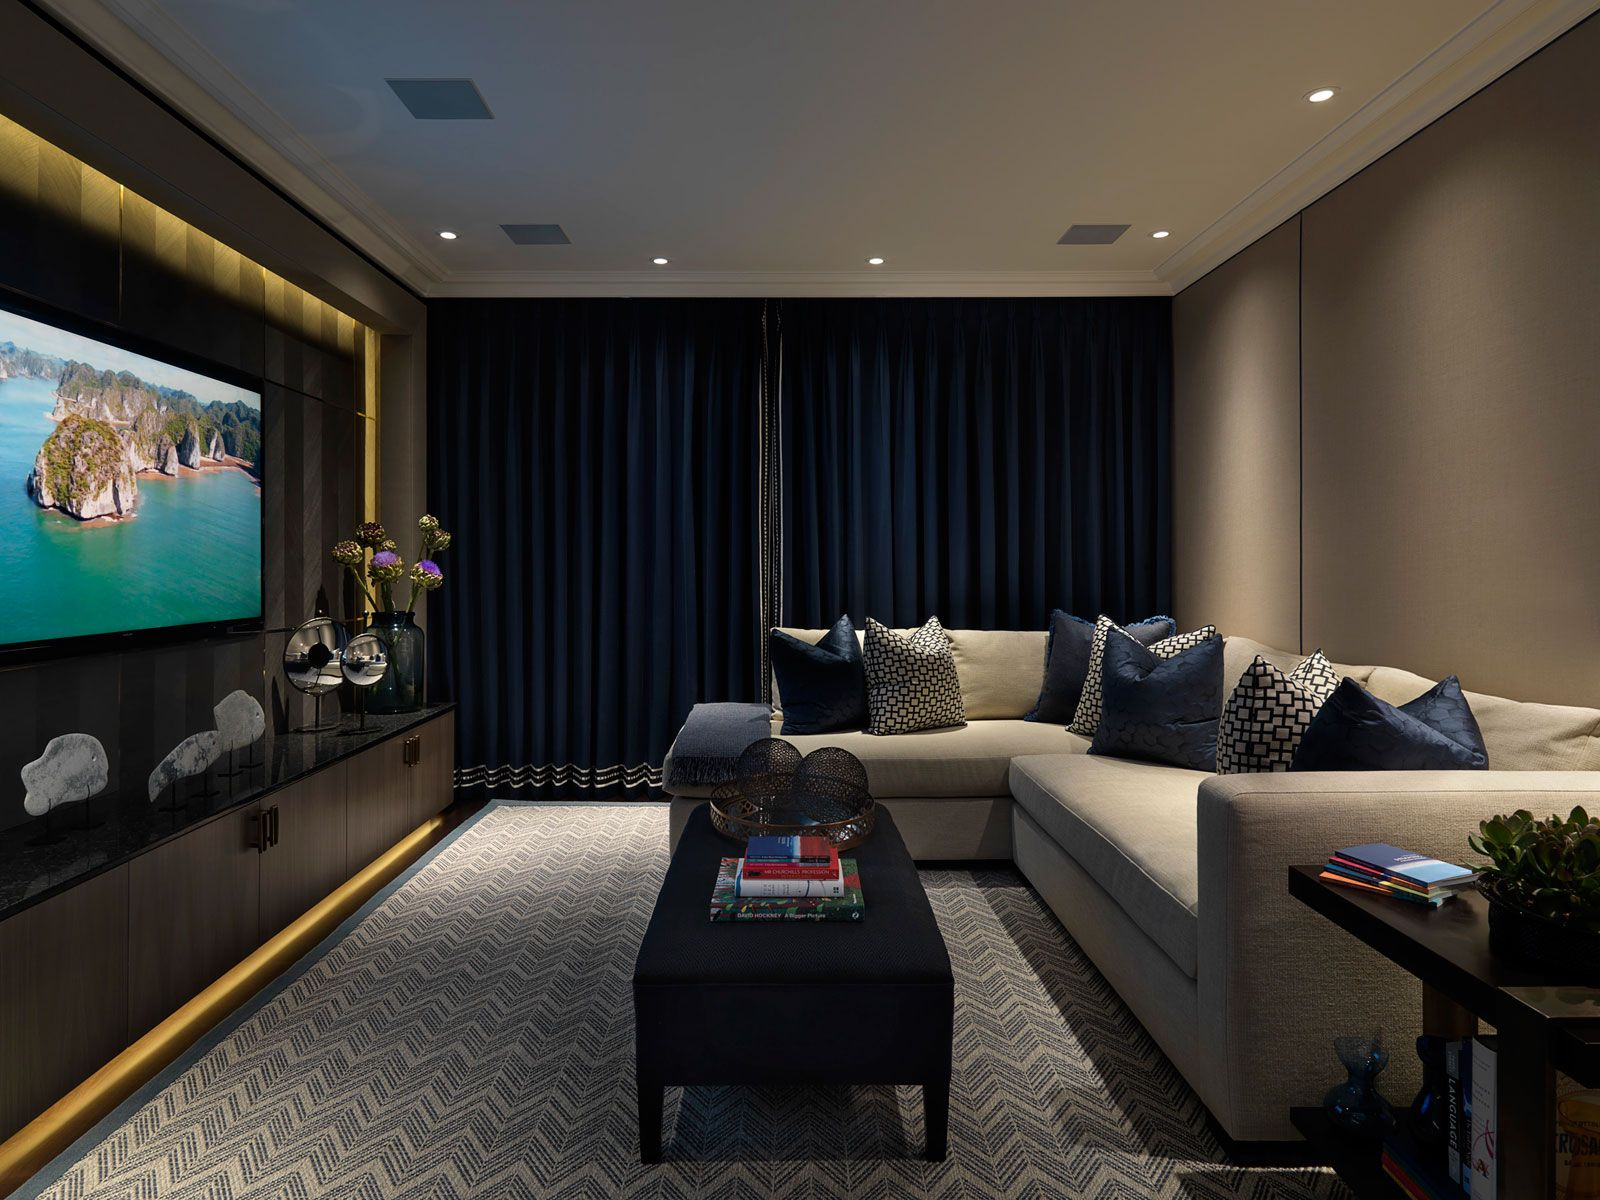 pin by alice on room living room cinema room. Black Bedroom Furniture Sets. Home Design Ideas